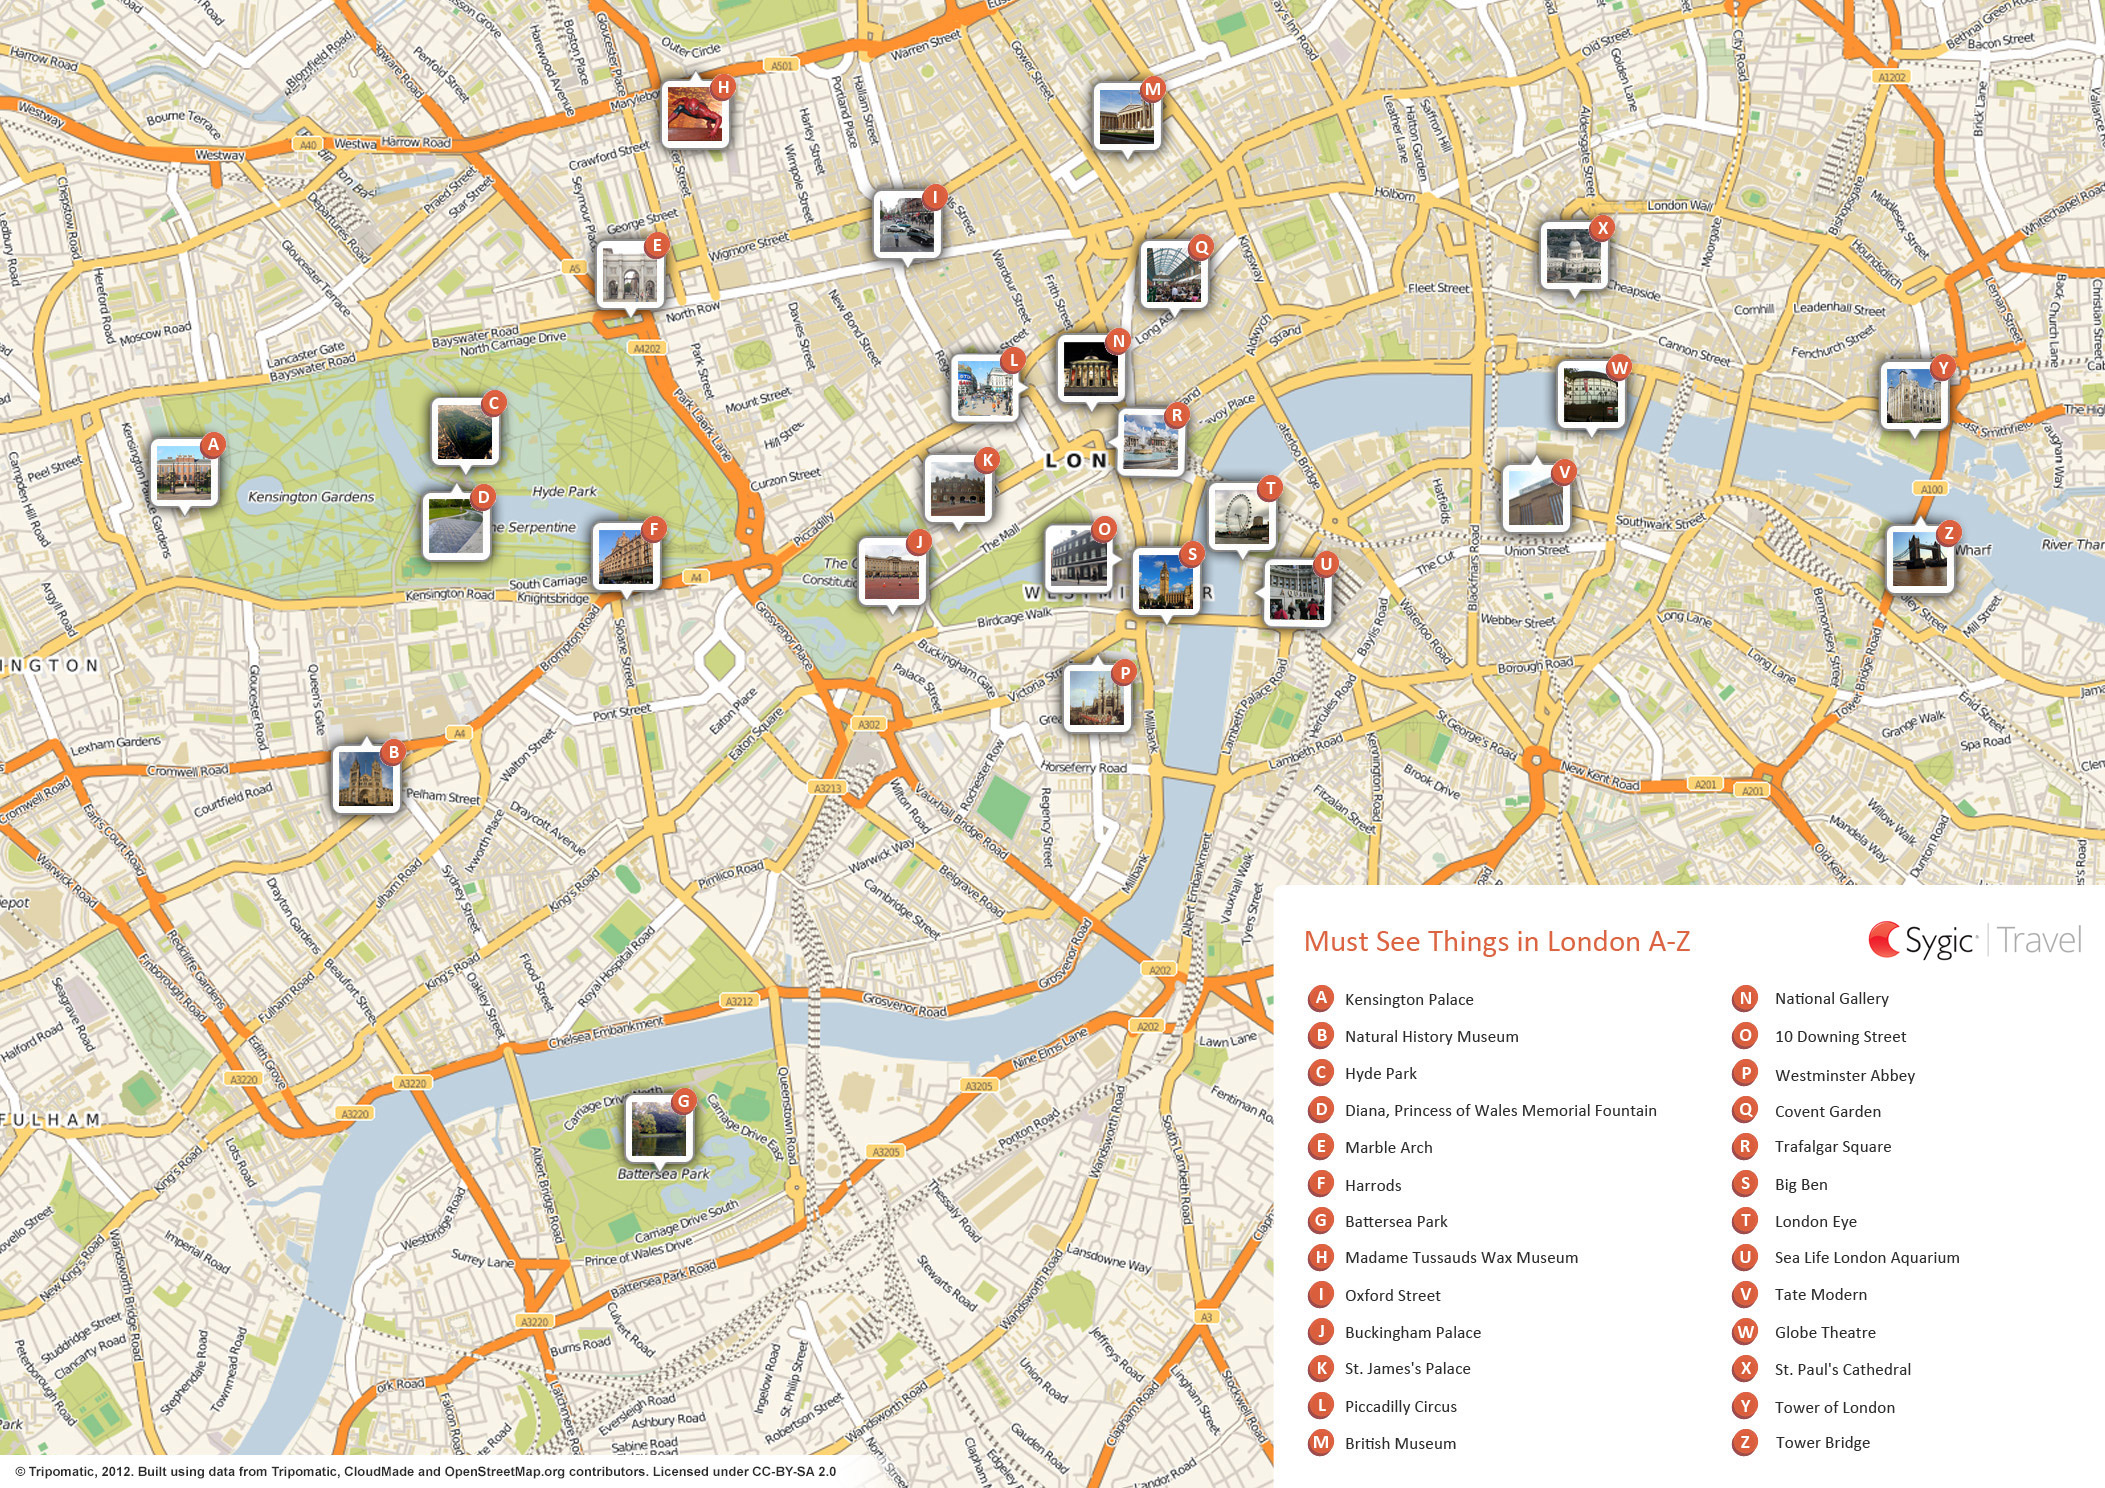 Printable Tourist Map Of London.London Printable Tourist Map Sygic Travel